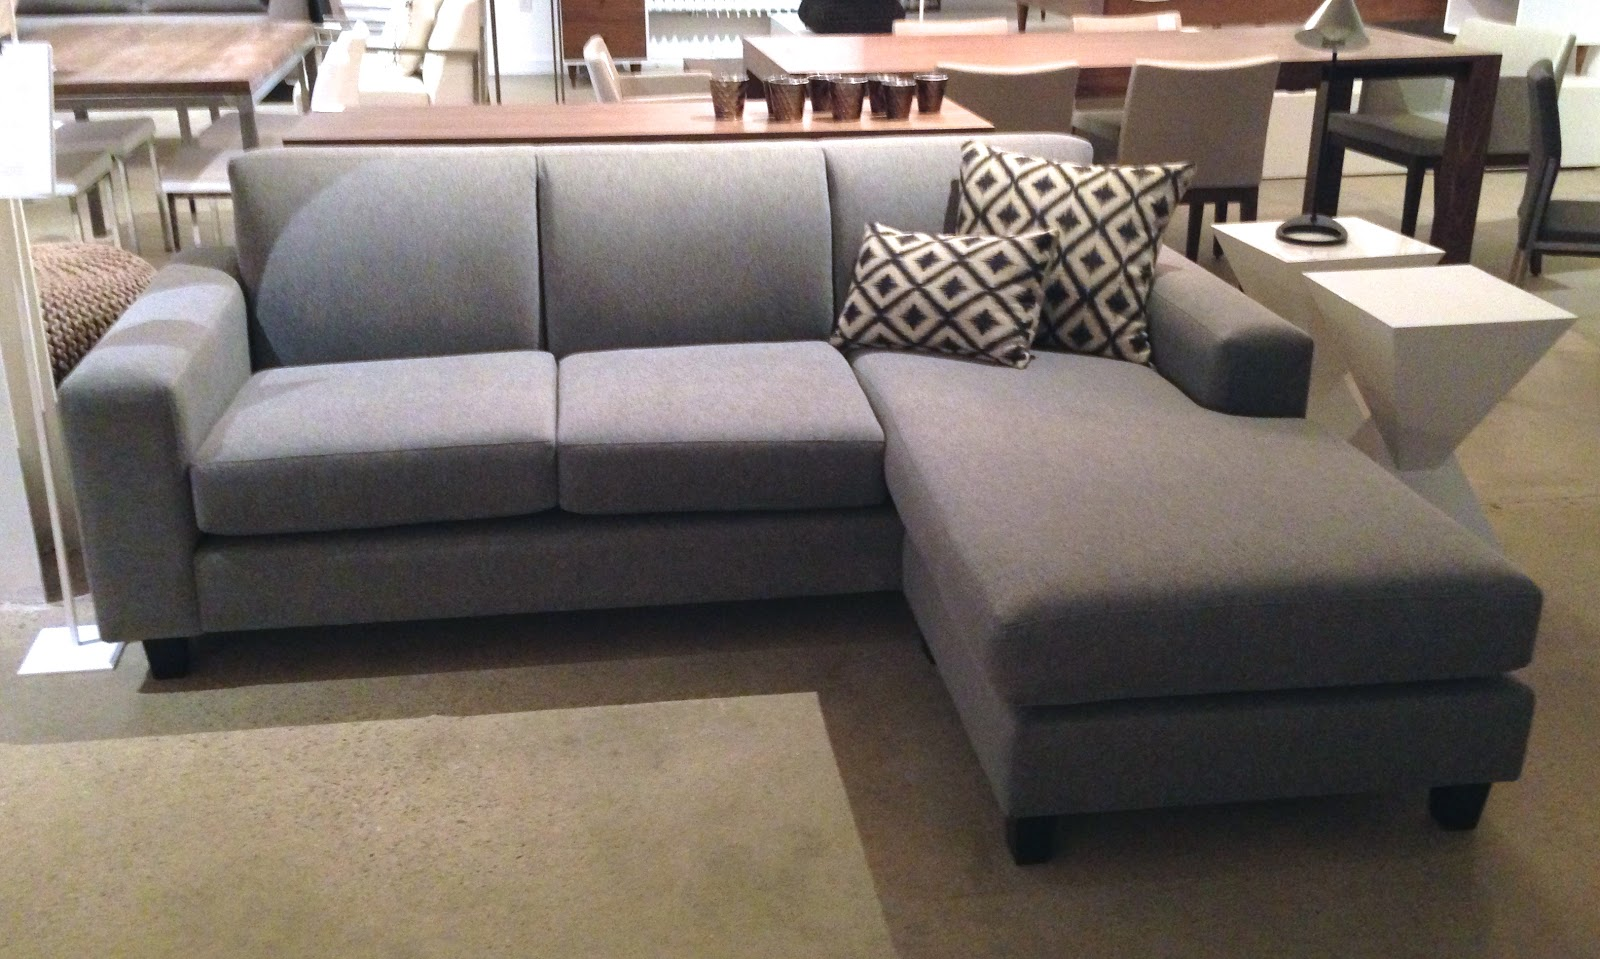 Sectional sofas canada grey sectional sofa canada mjob for Leather sectional sofa clearance canada